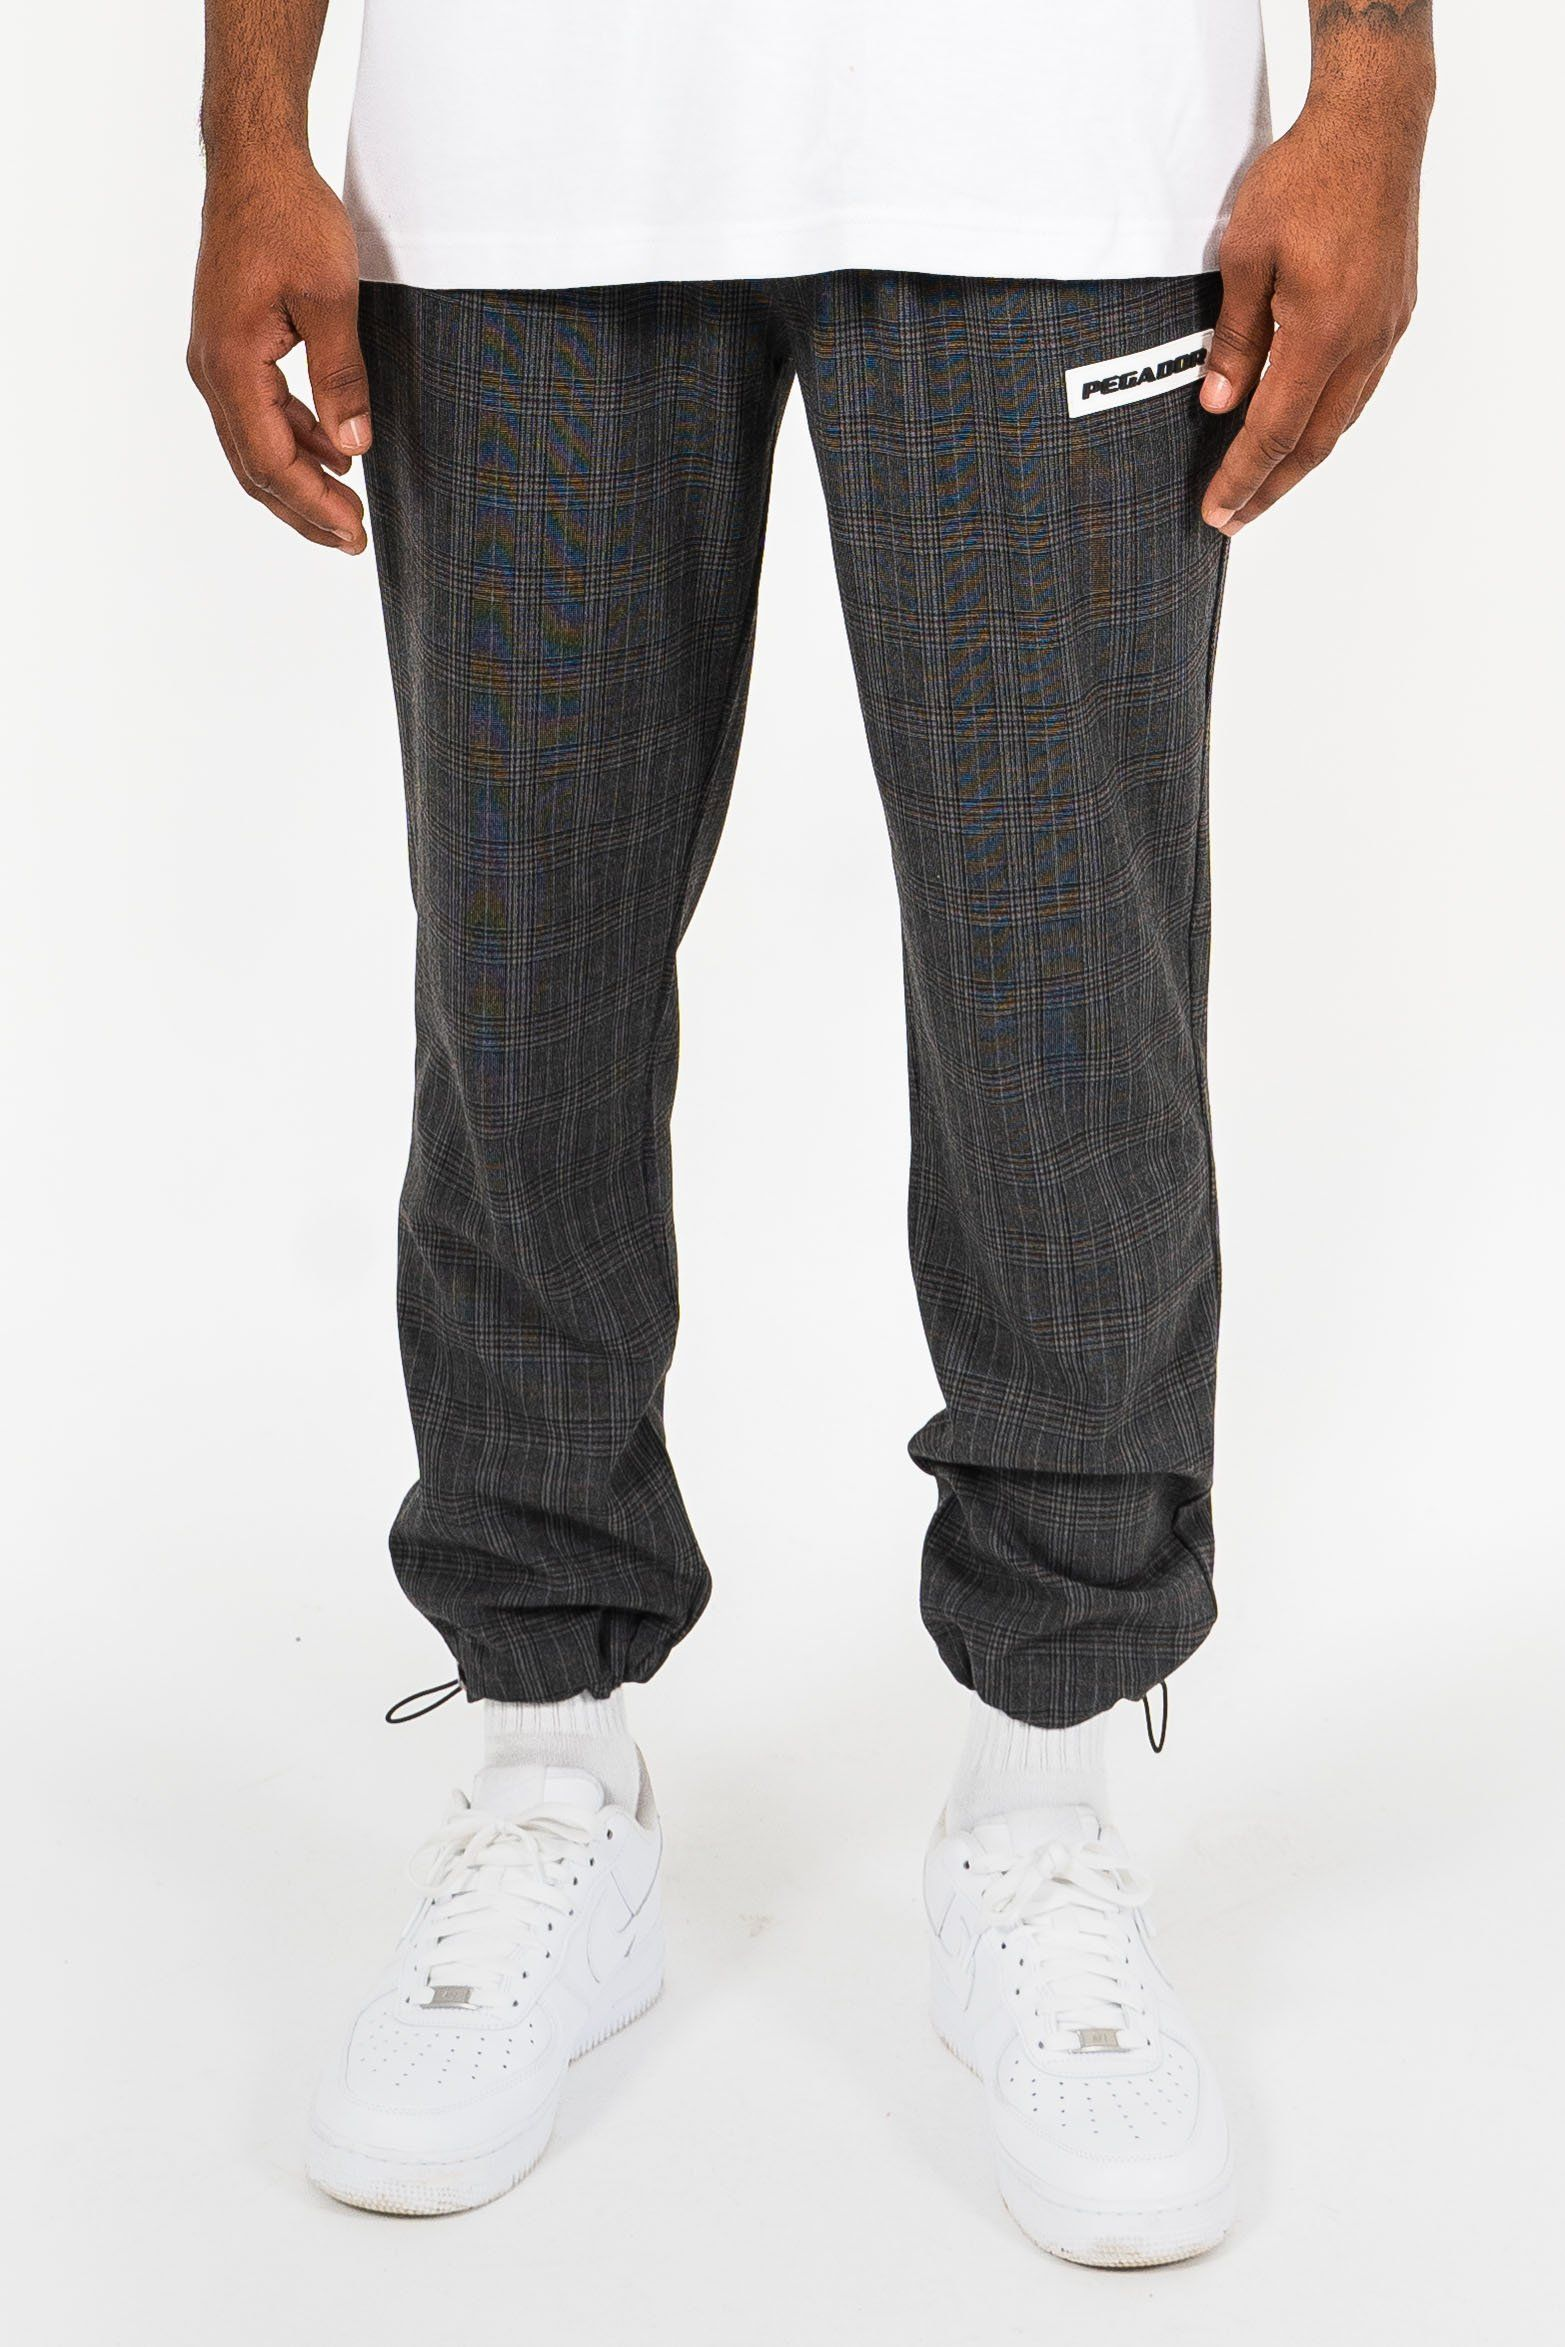 Palma Checkered Pants Dark Grey - PEGADOR - Dominate the Hype